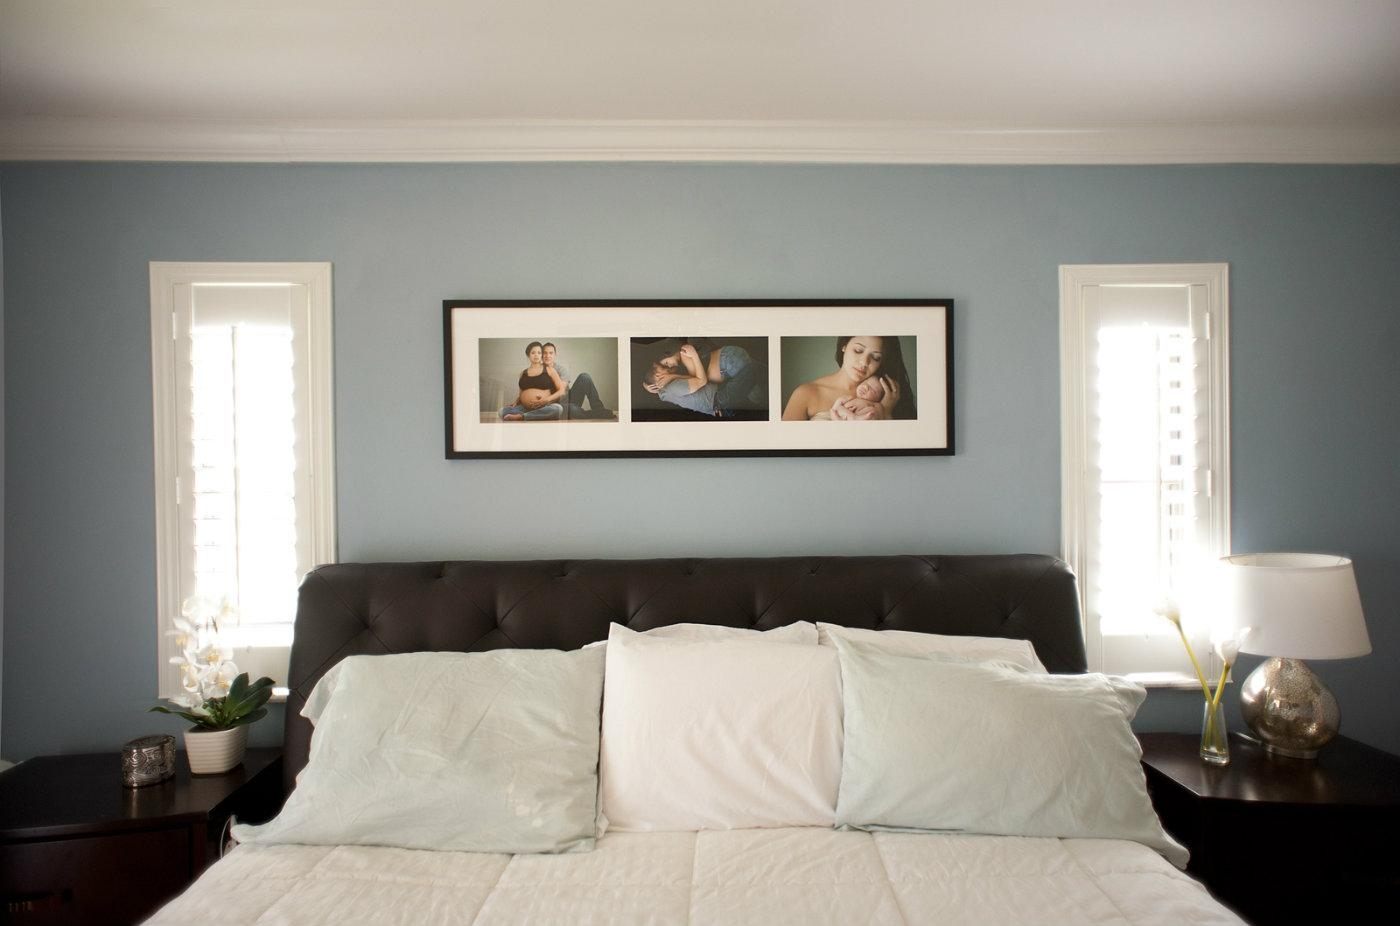 Bedroom Wall Art – Helpformycredit Inside Bed Wall Art (Image 6 of 20)